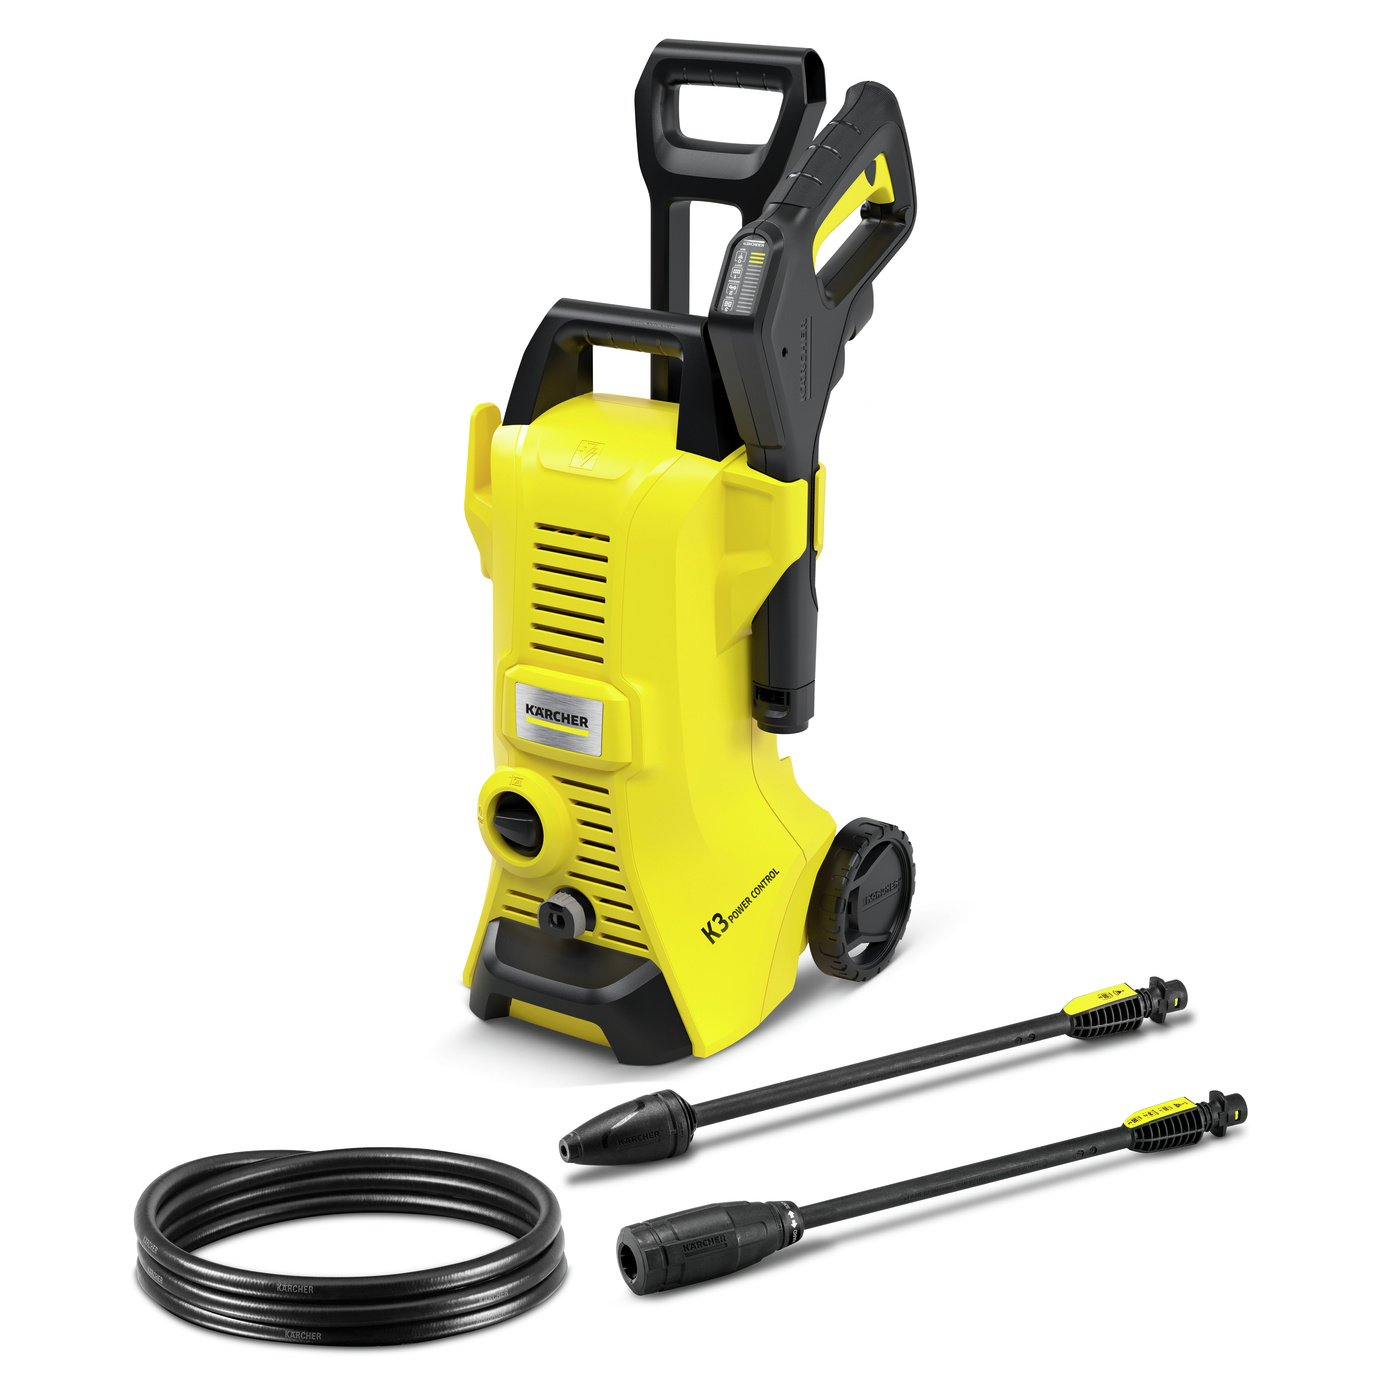 Karcher K3 Power Control Pressure Washer - 1600W